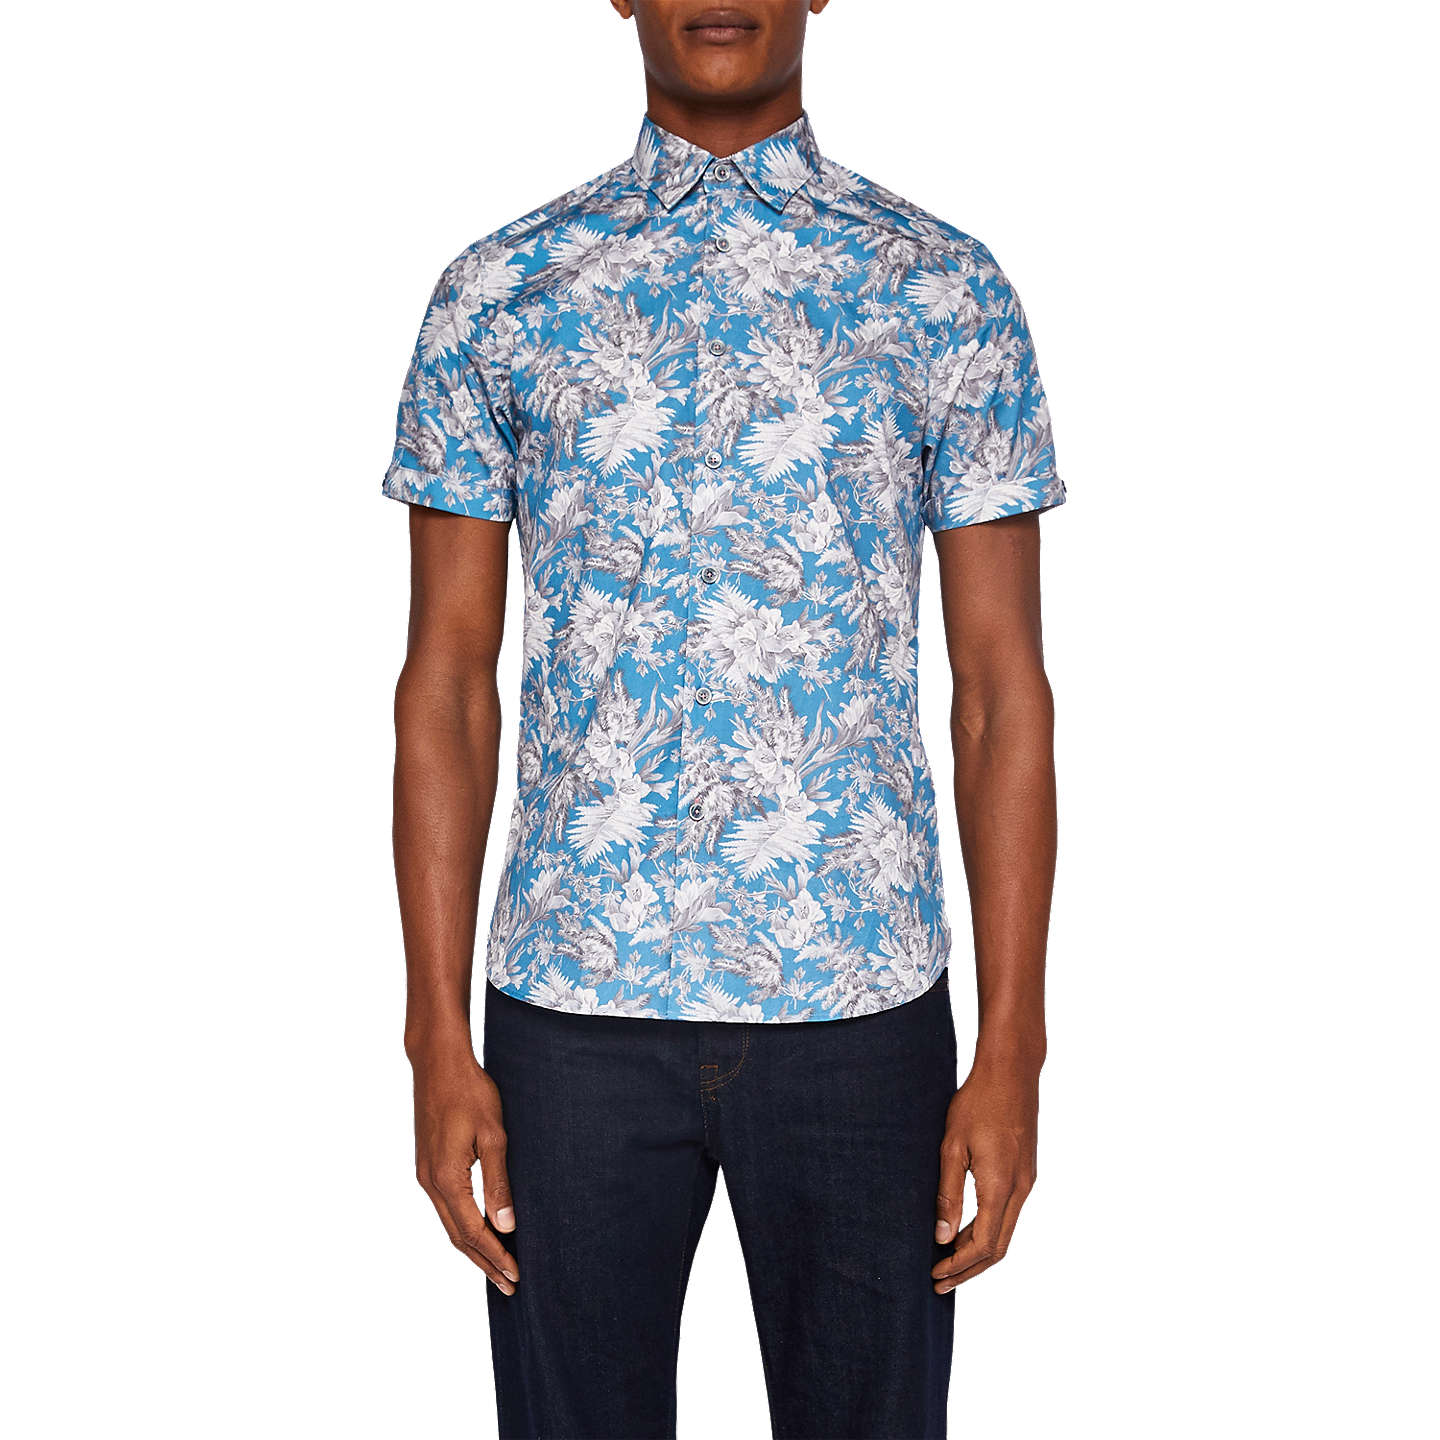 Ted Baker Neekrit Short Sleeve Floral Shirt | Light Blue at John Lewis